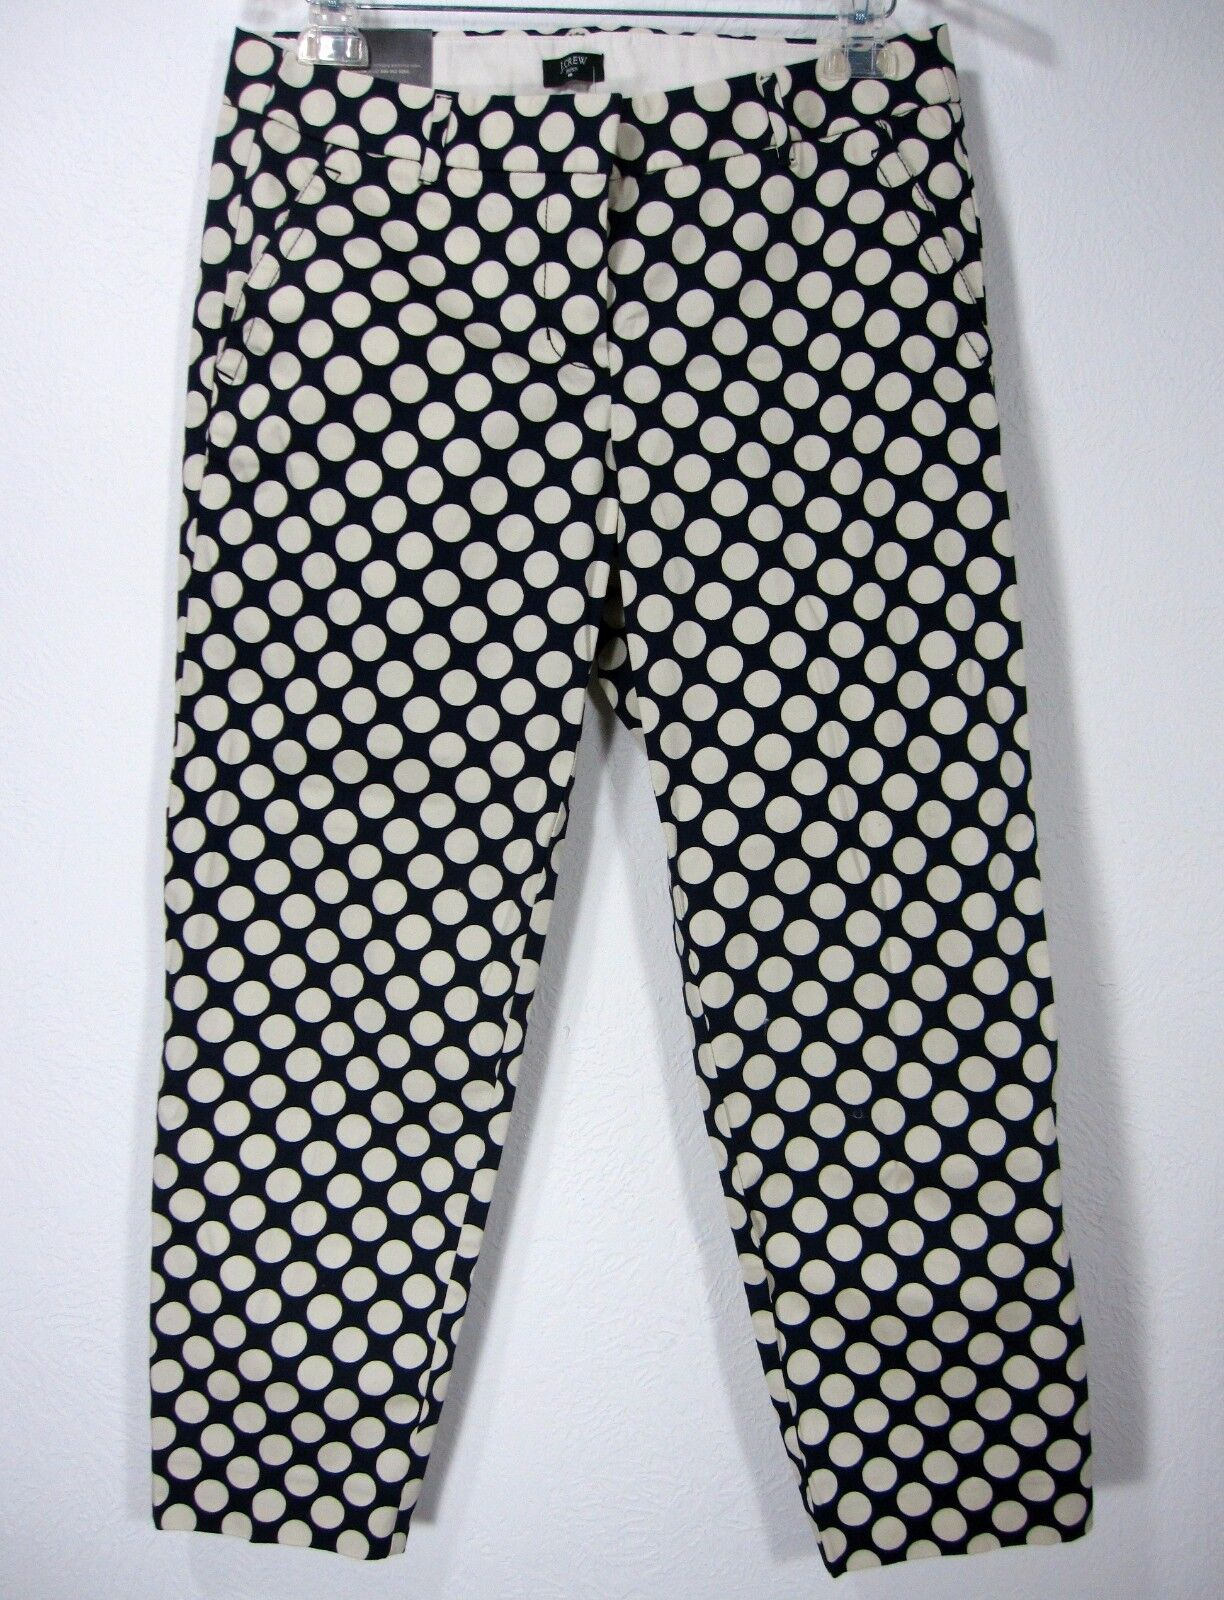 J CREW STRETCH NWT CITY FIT POLKA DOTS SKIMMER PANTS SIZE 6 blueE WHITE  Cotton